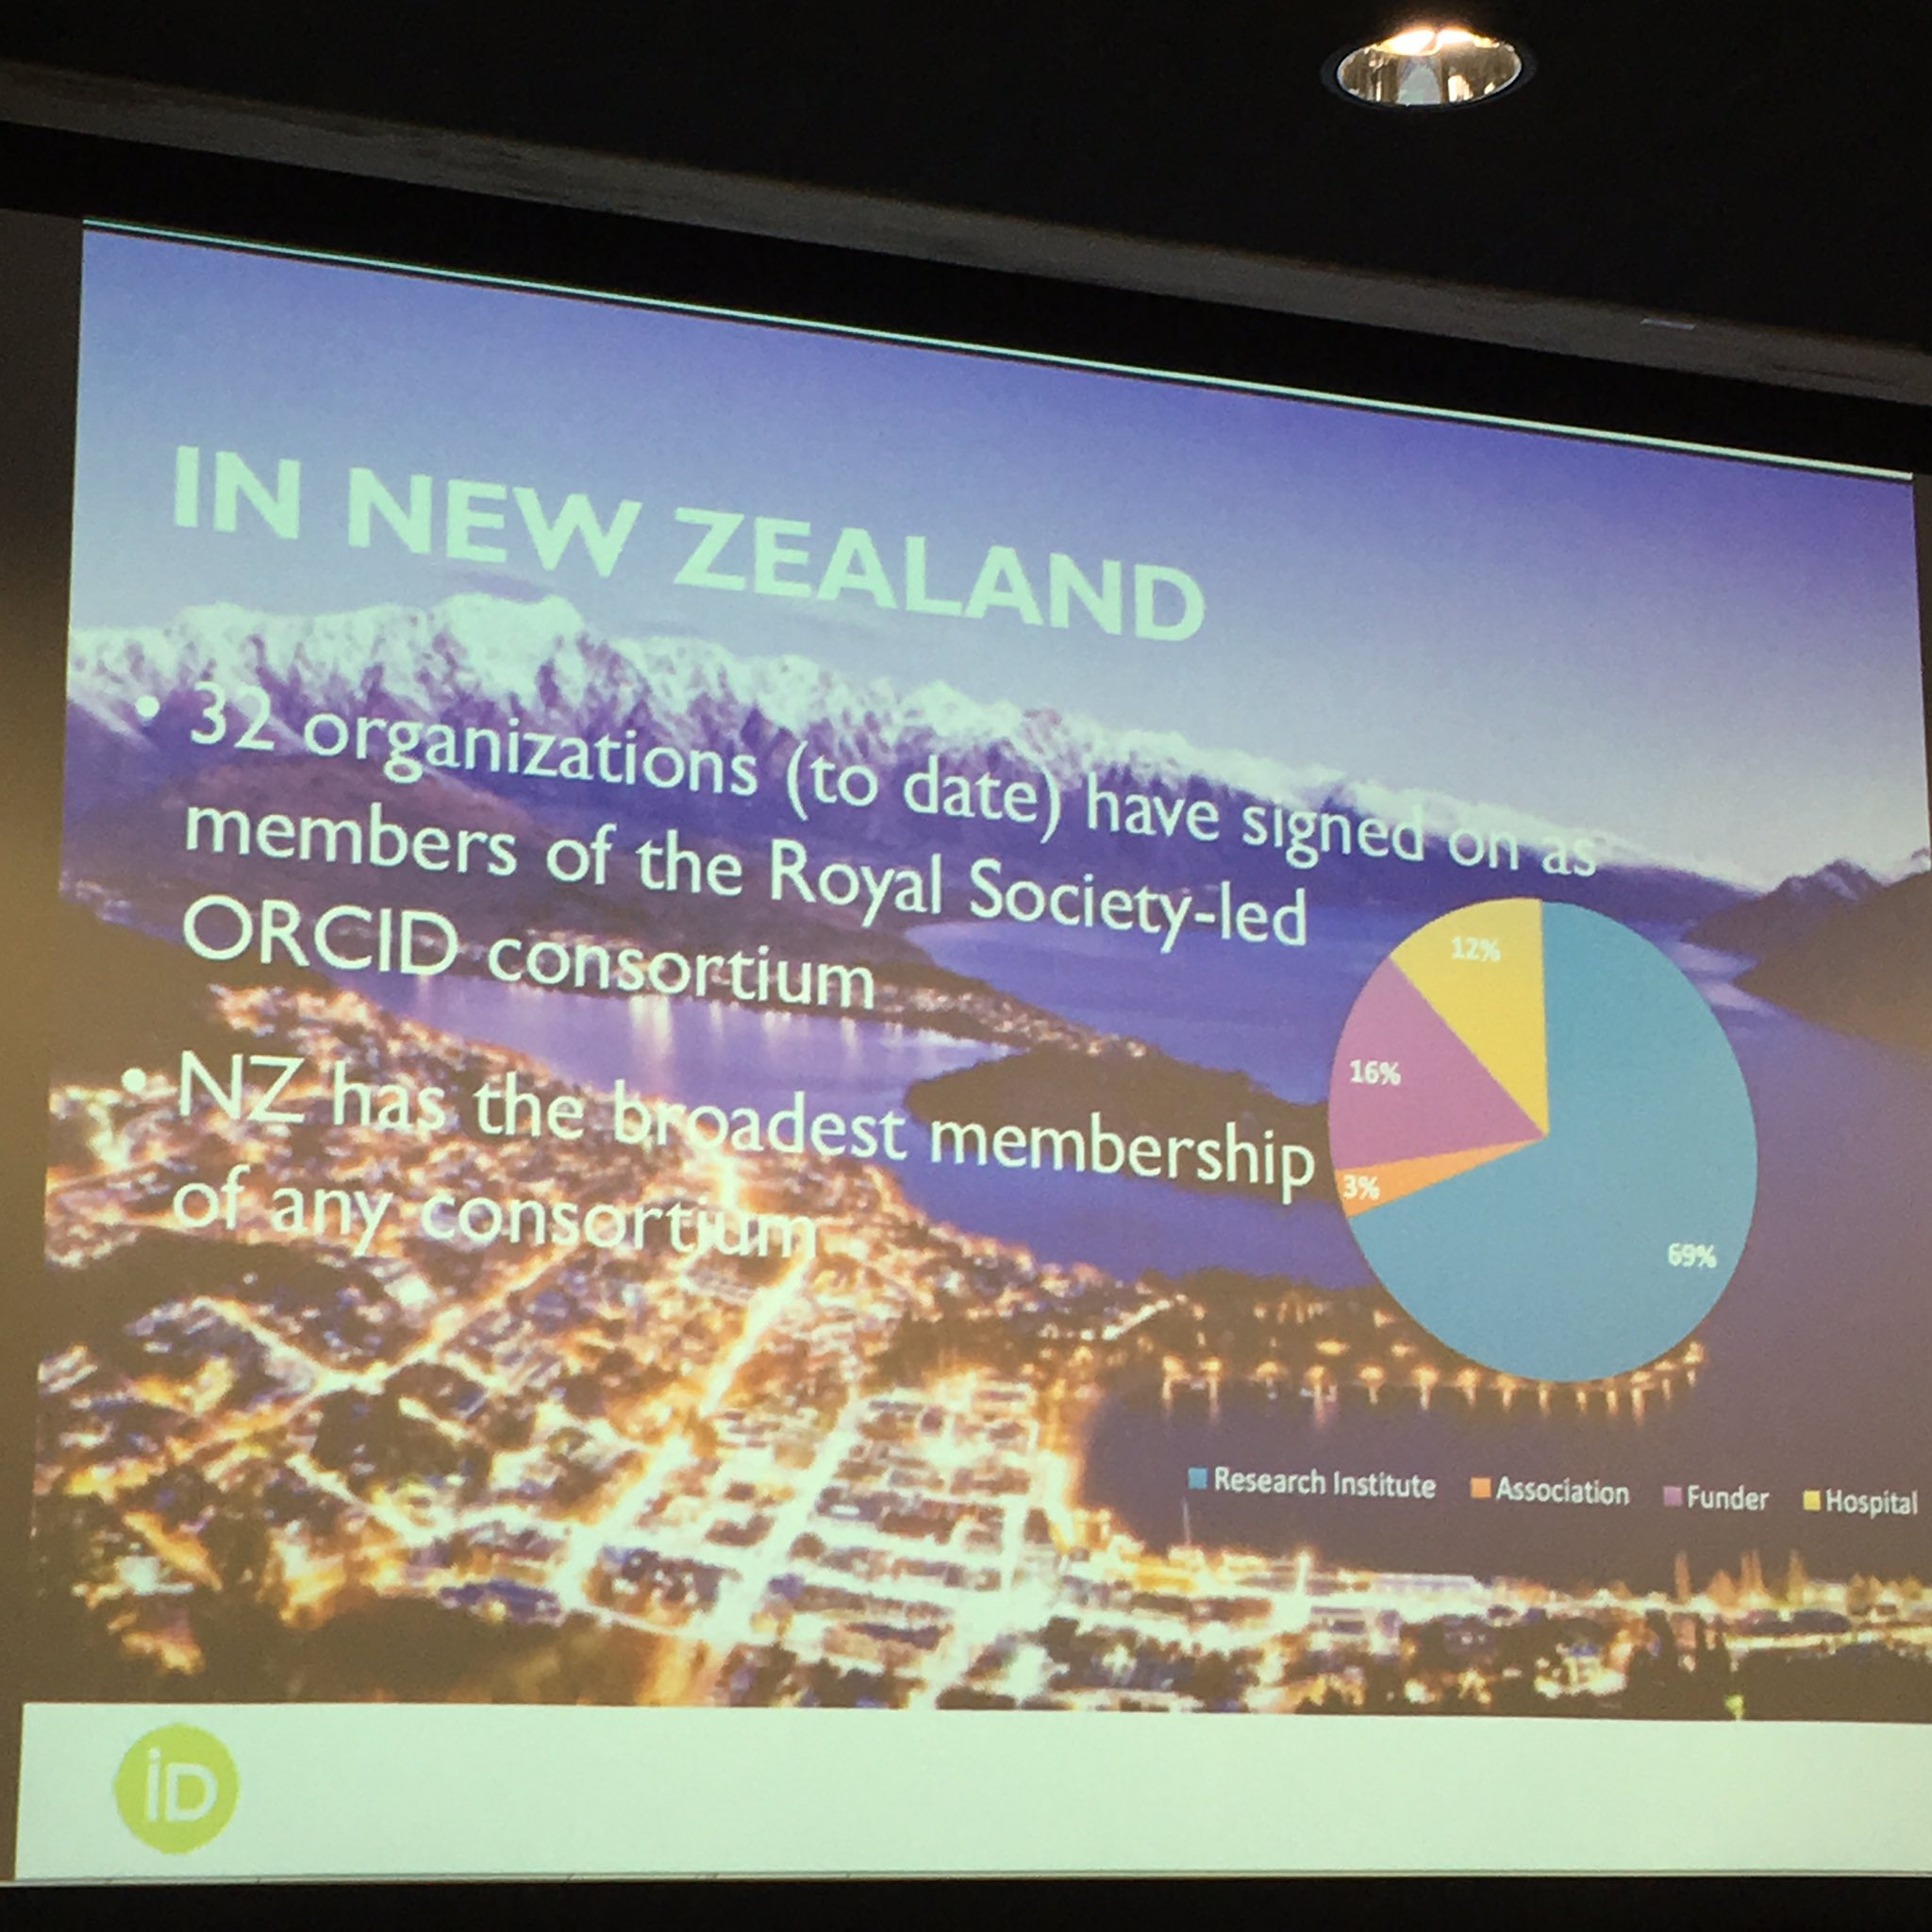 NZ @ORCID_Org consortium is already signed up by 32 orgs, more expected and welcome! #ORCID_NZlaunch https://t.co/bjsa5F9tQU